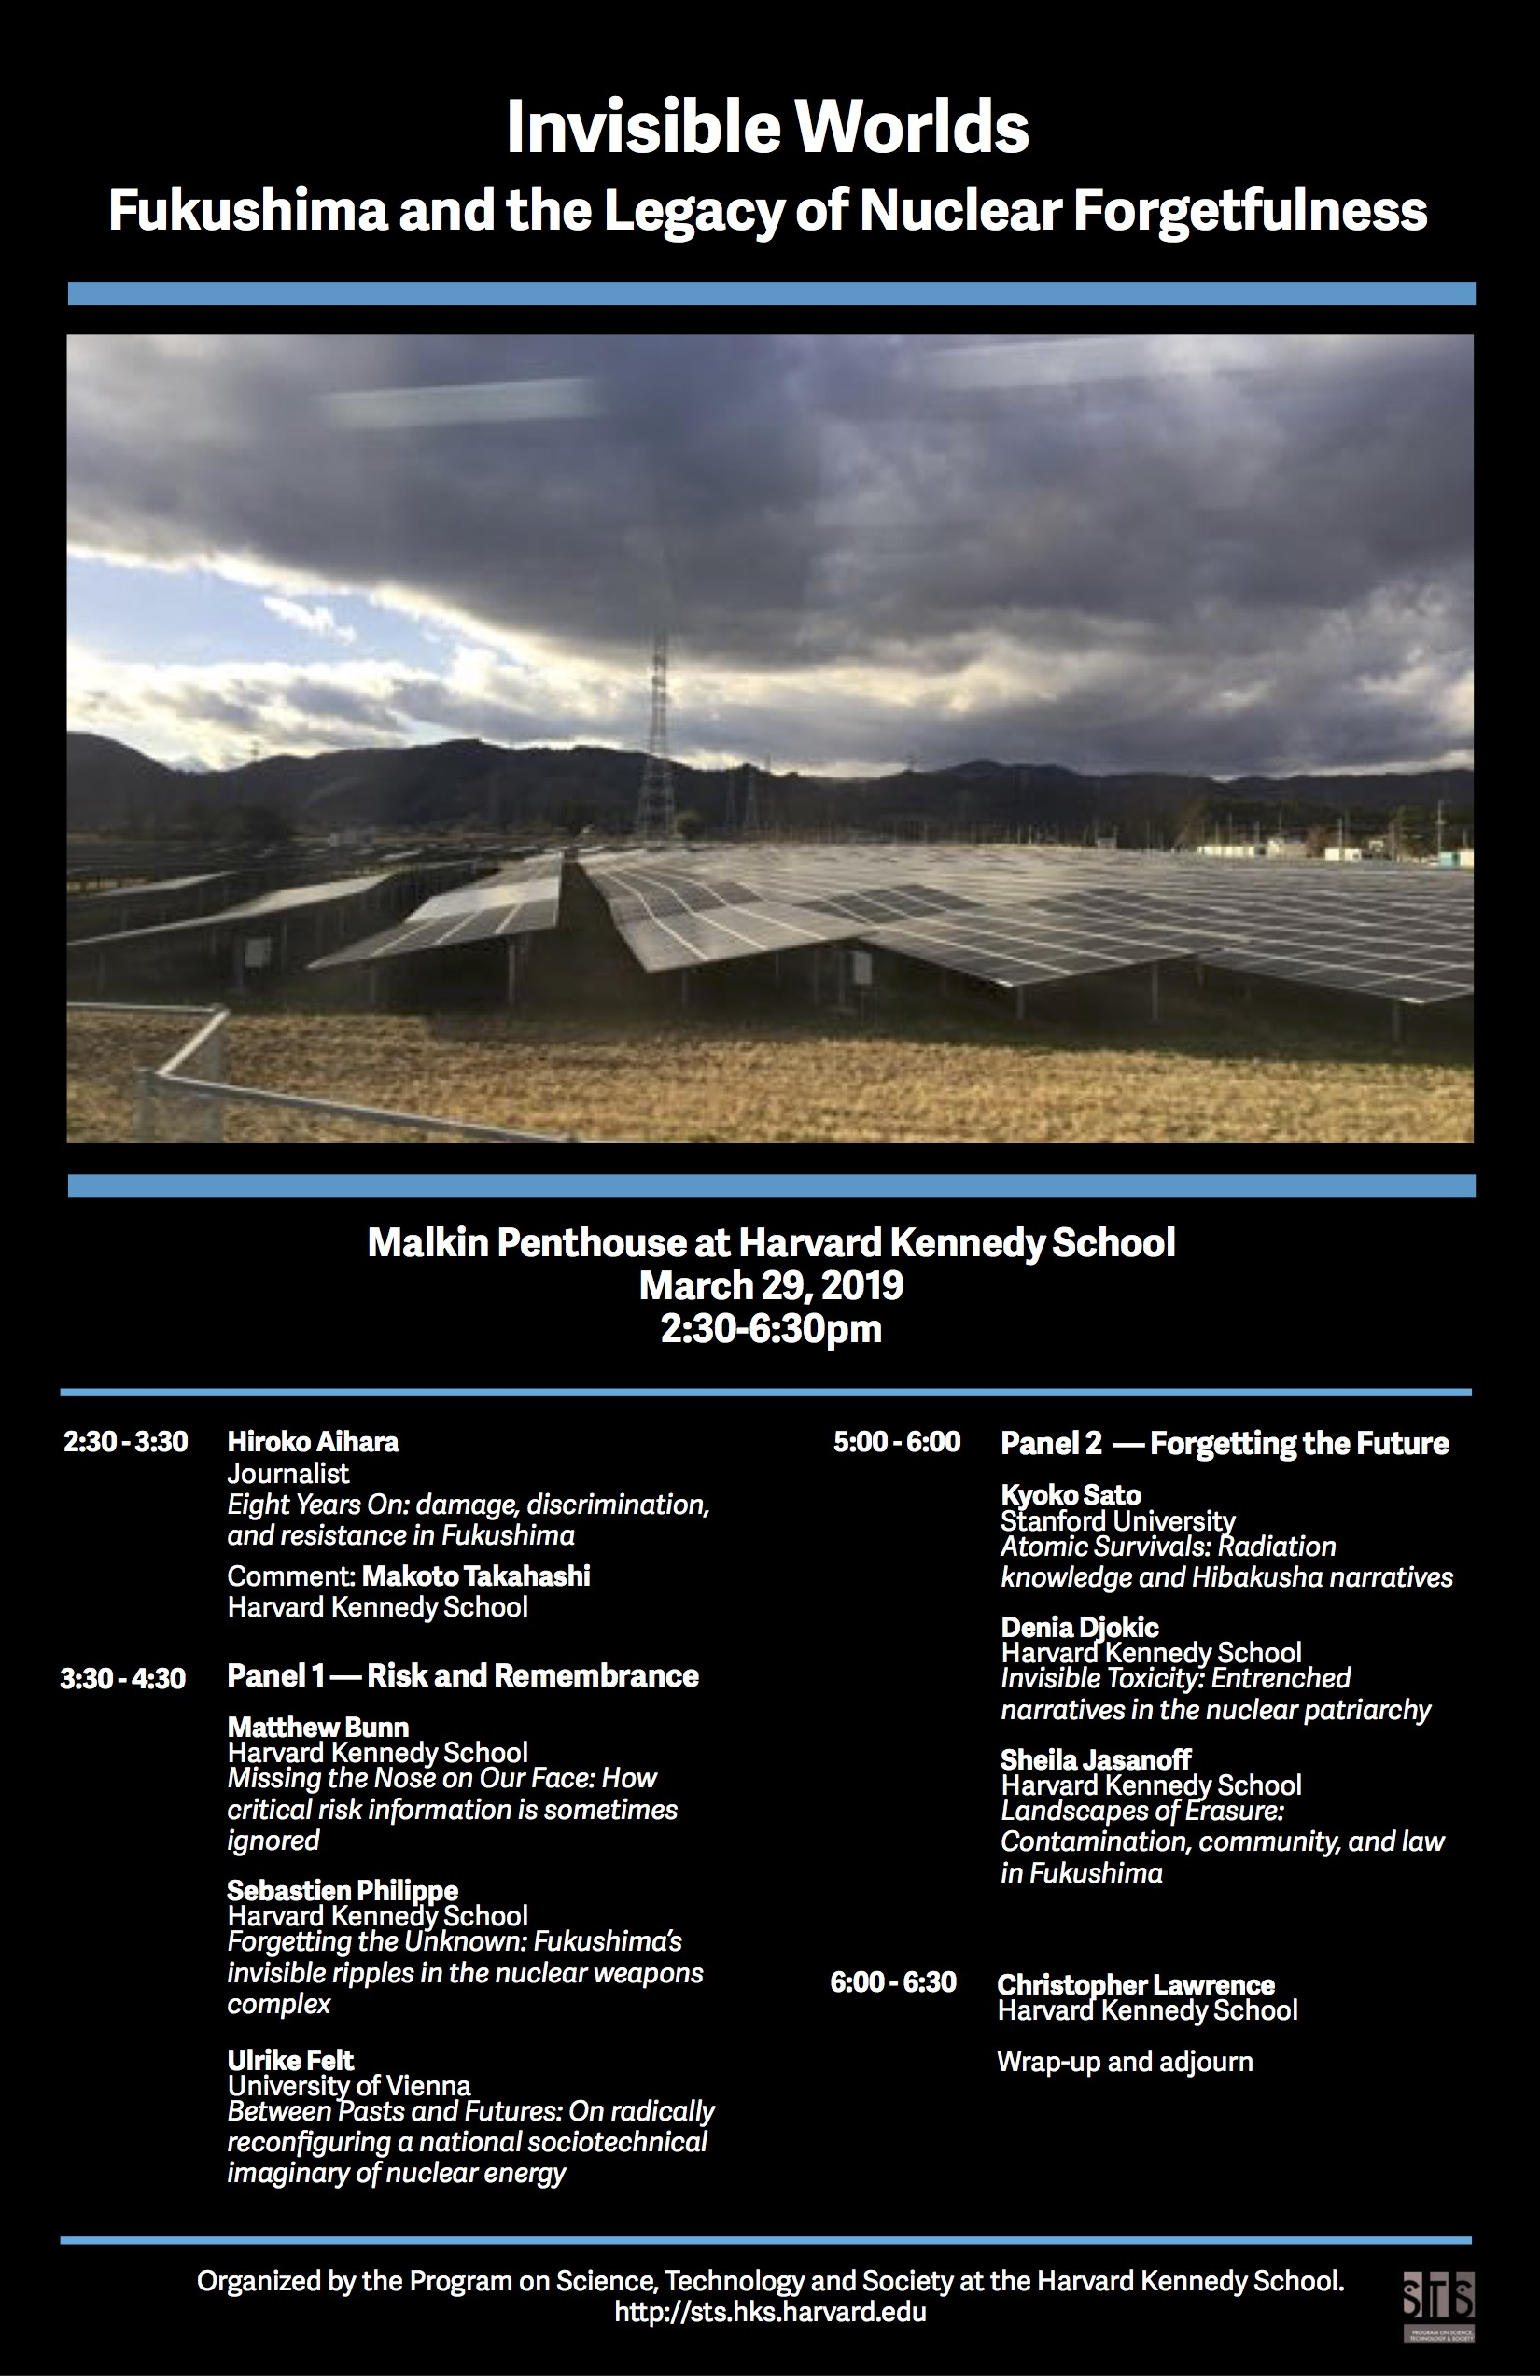 Invisible Worlds: Fukushima and the Legacy of Nuclear Forgetfulness event poster